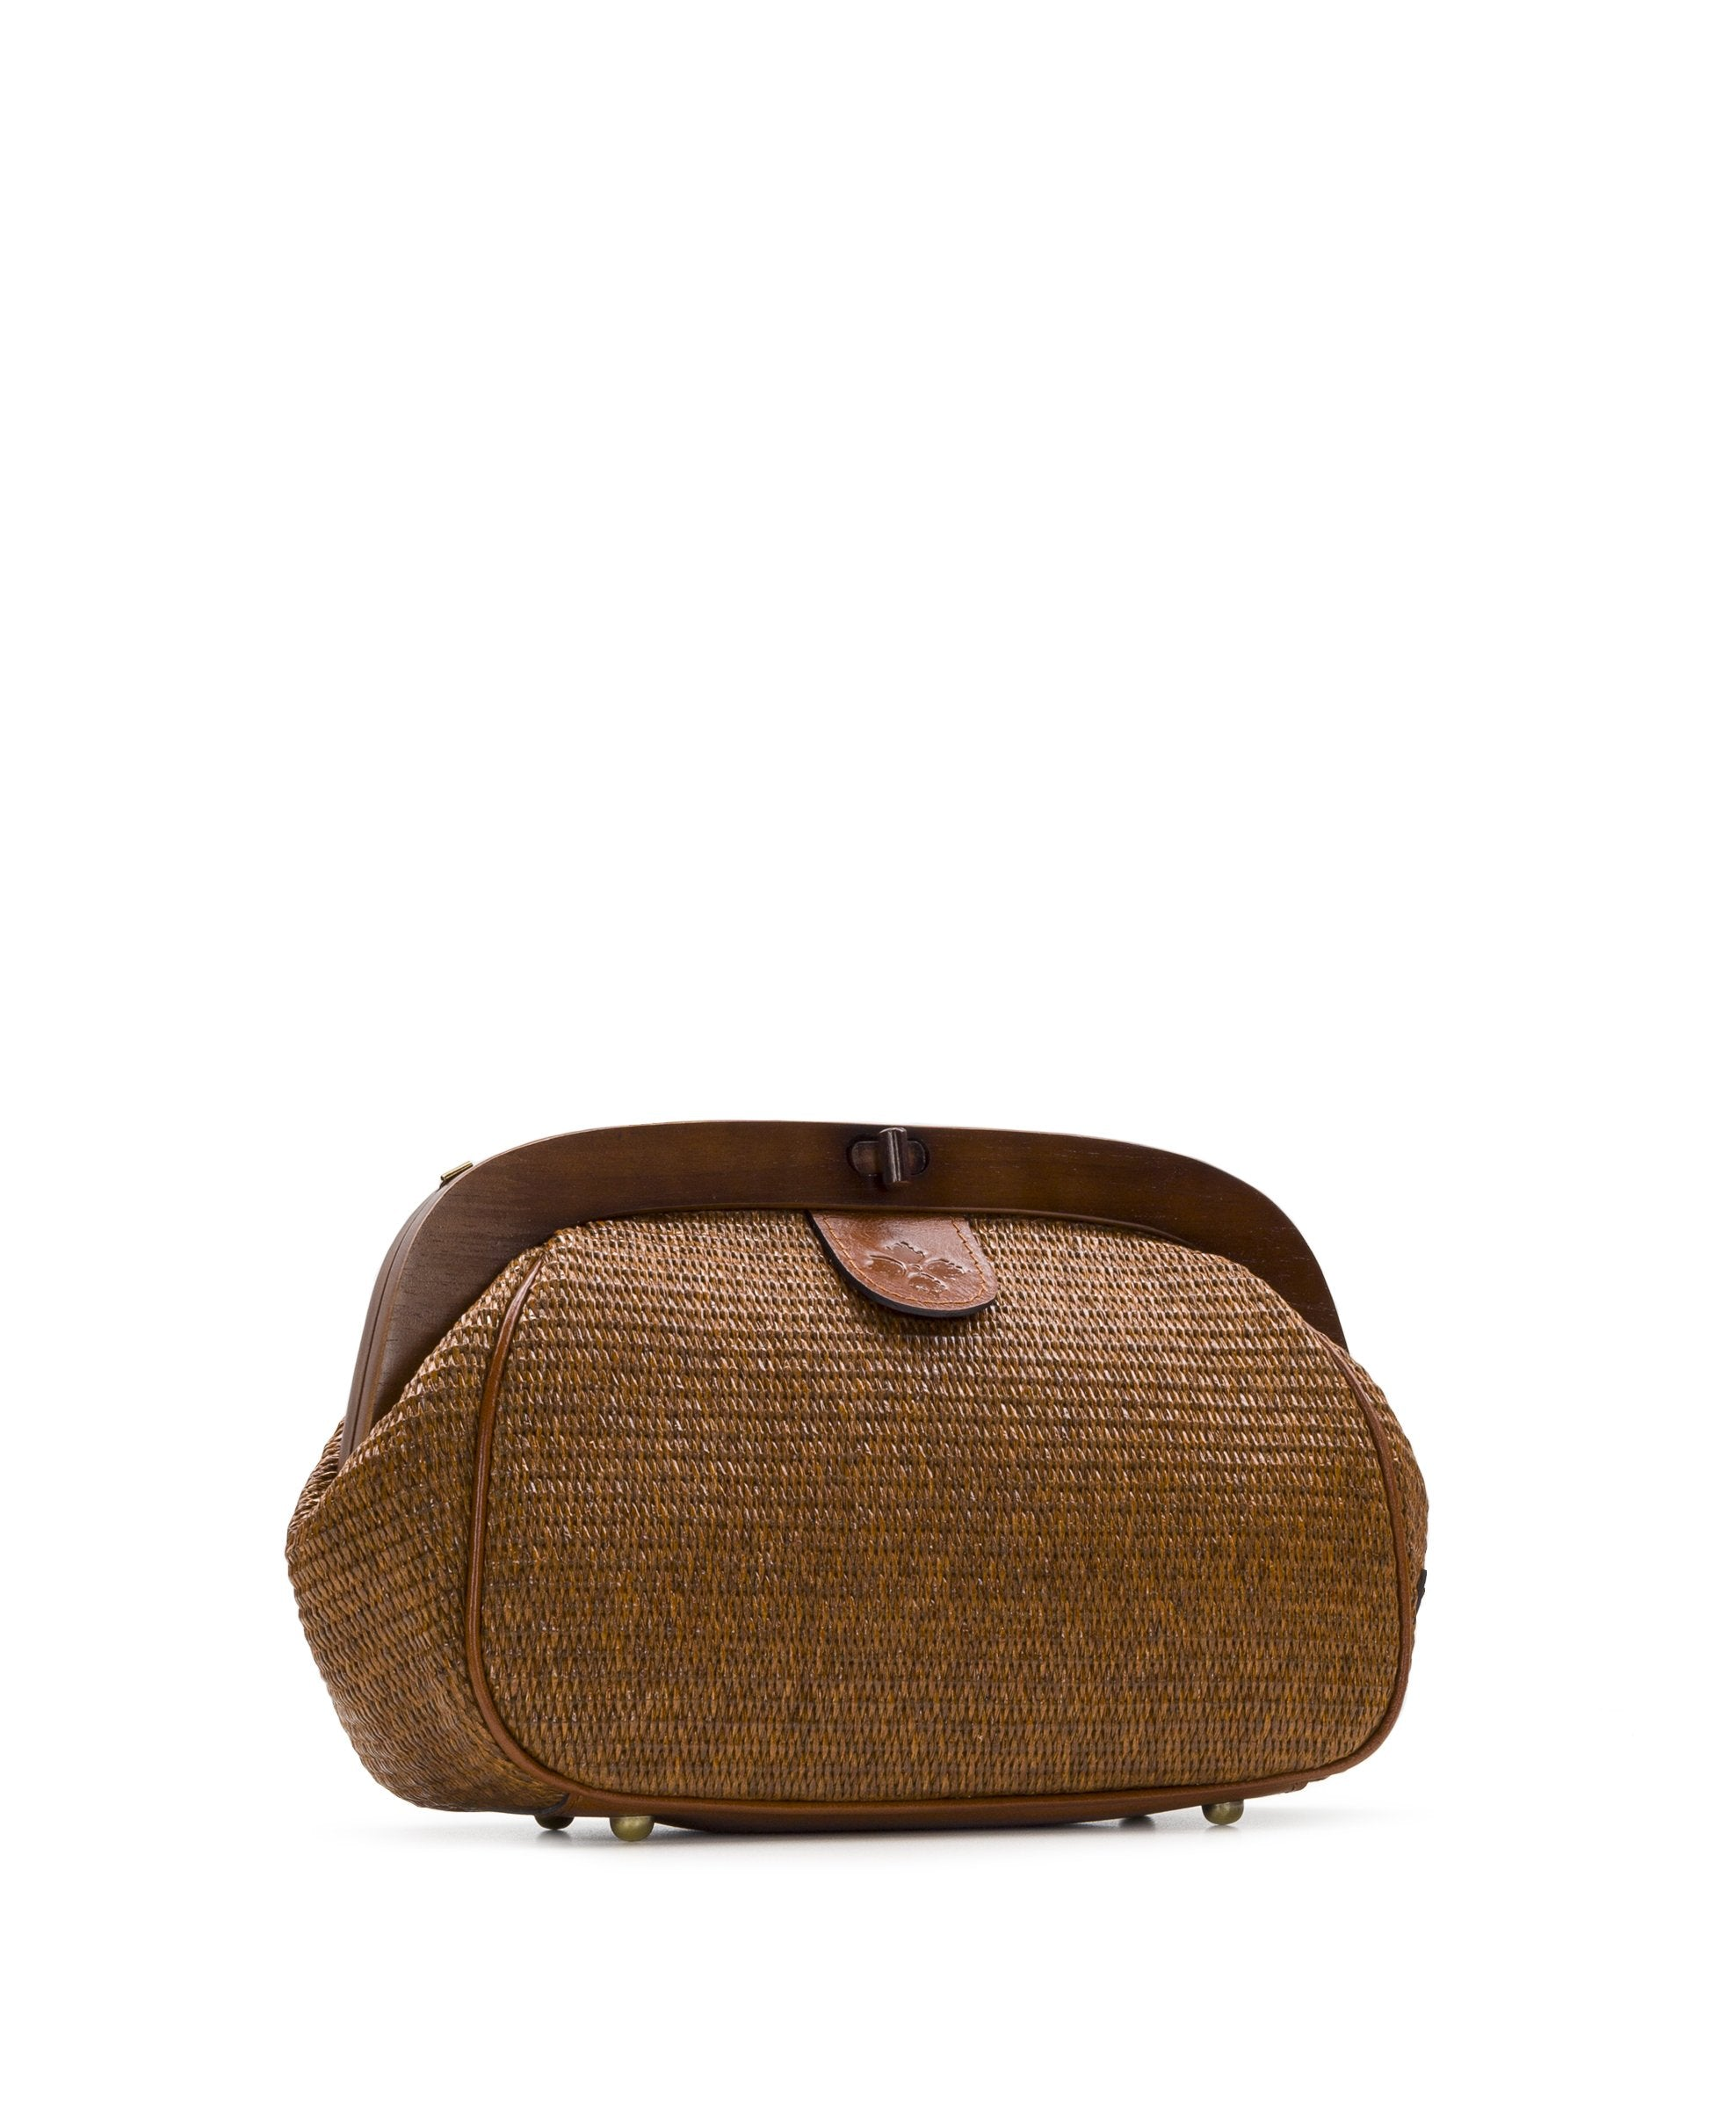 Gracchi Satchel - Raffia Wood Frame